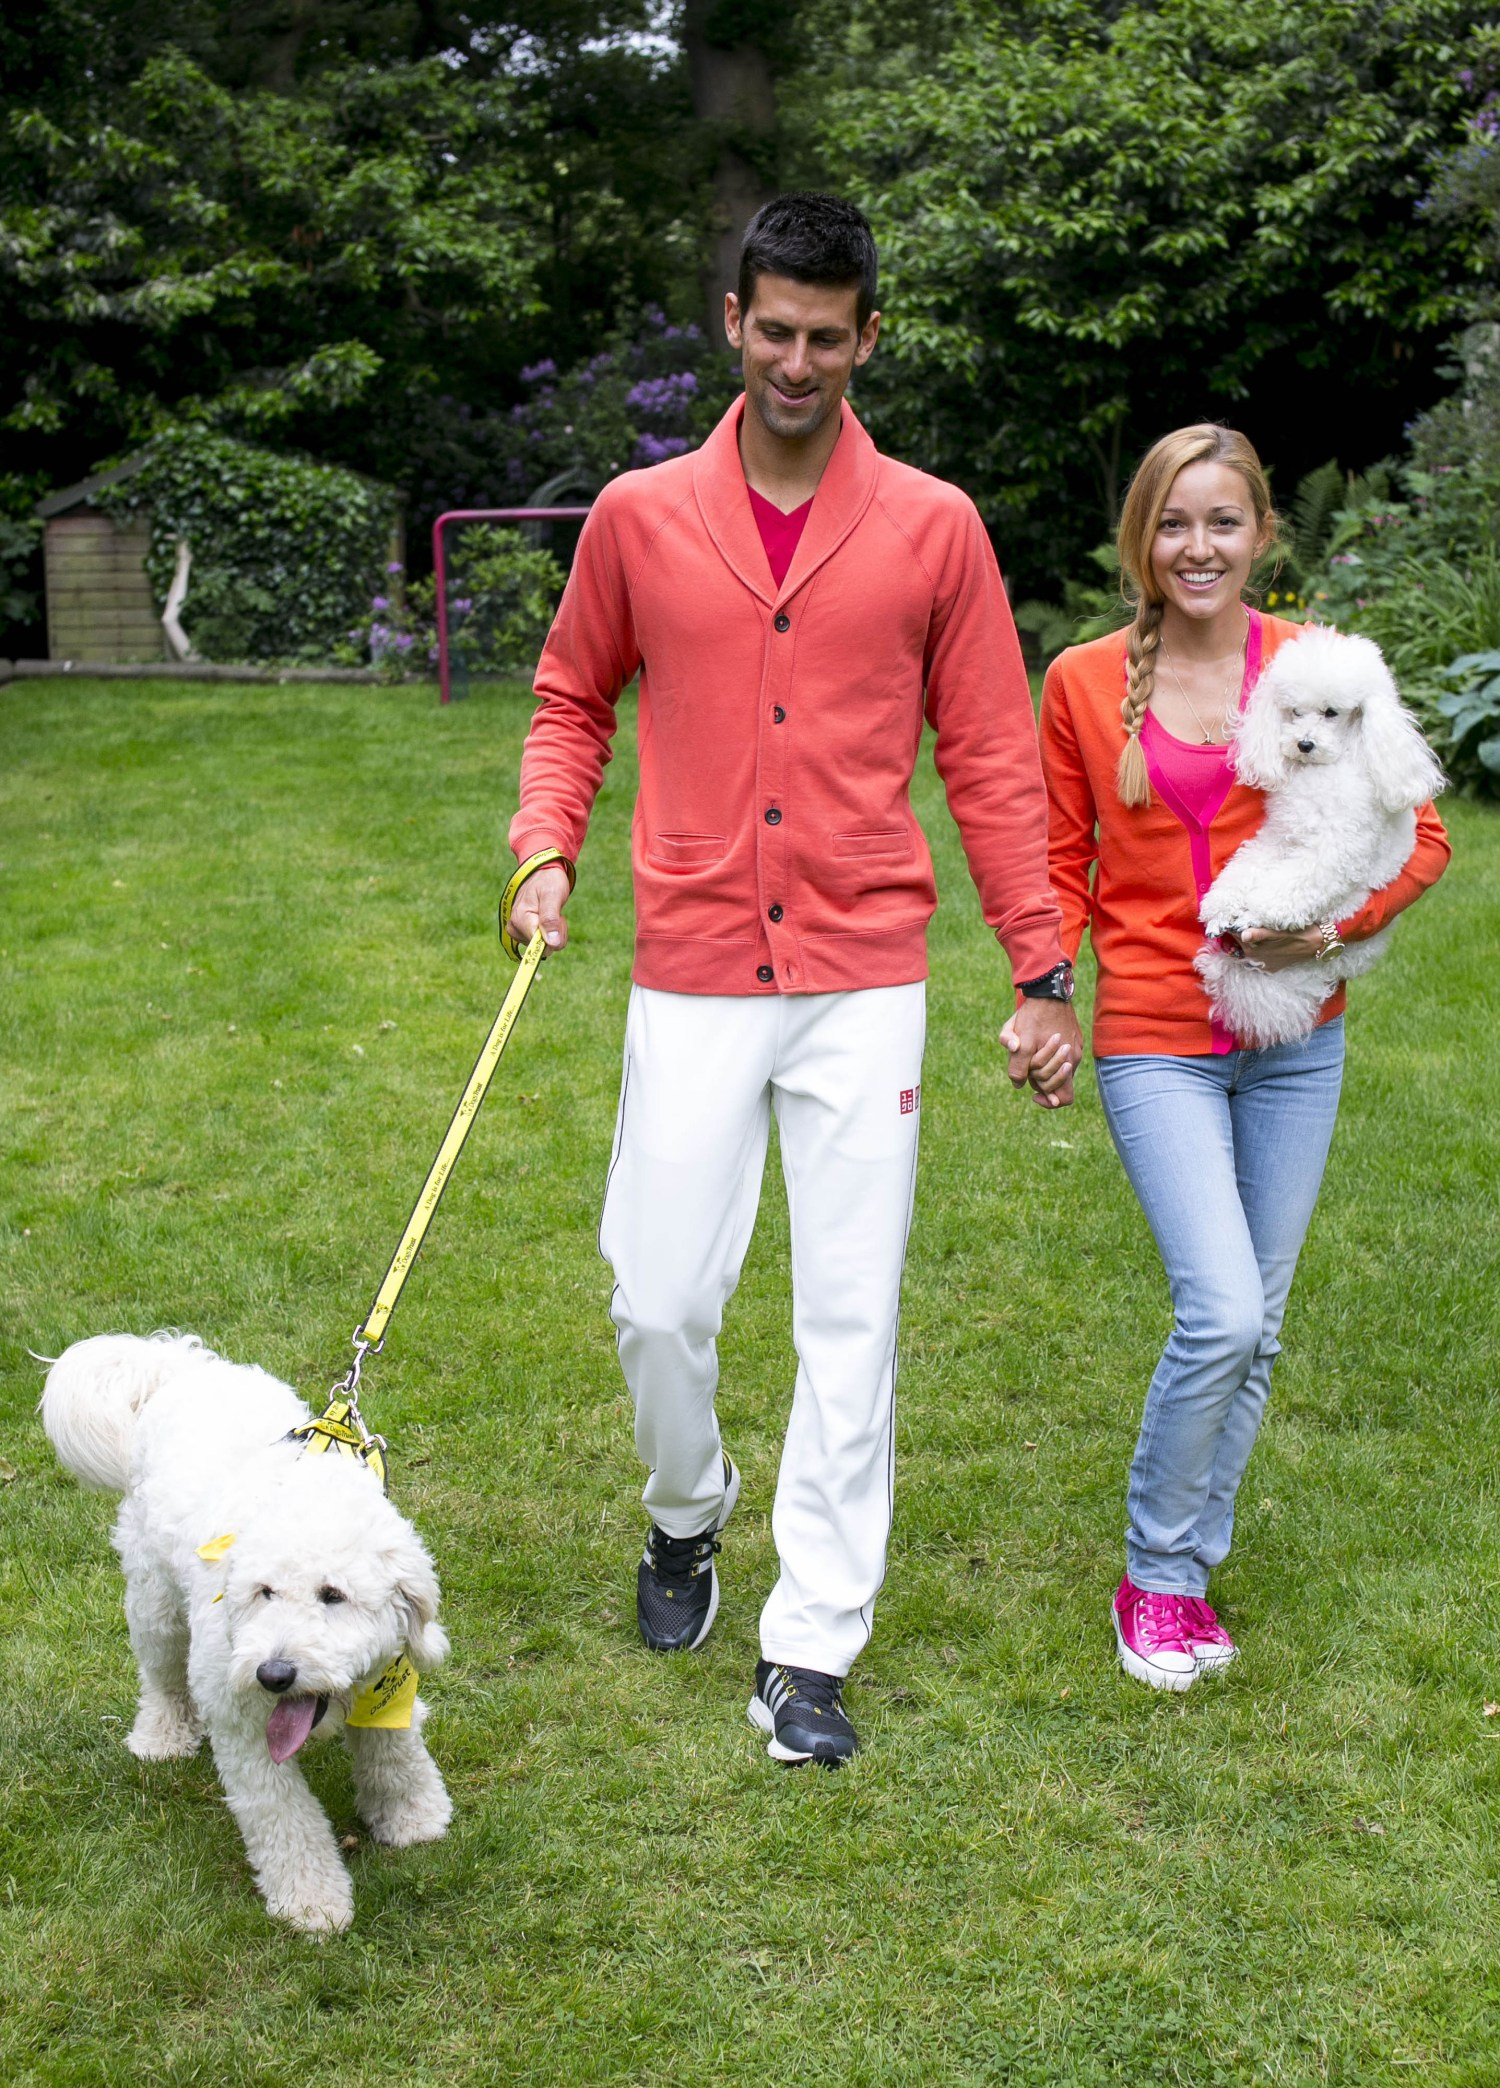 Djokovic names dog for Dogs Trust. EDITORIAL USE ONLY: World number one tennis player and dog lover Novak Djokovic with his girlfriend Jelena Ristic and their pet poodle, Pierre, play with Goldendoodle Bella, a Dogs Trust rescue dog, which Novak named this morning at his temporary residence in Wimbledon, south west London, to raise awareness of Dogs Trust and help find Bella a new home. PRESS ASSOCIATION Issue date: Friday June 21, 2013. Photo credit should read: John Phillips/PA Wire URN:16865807